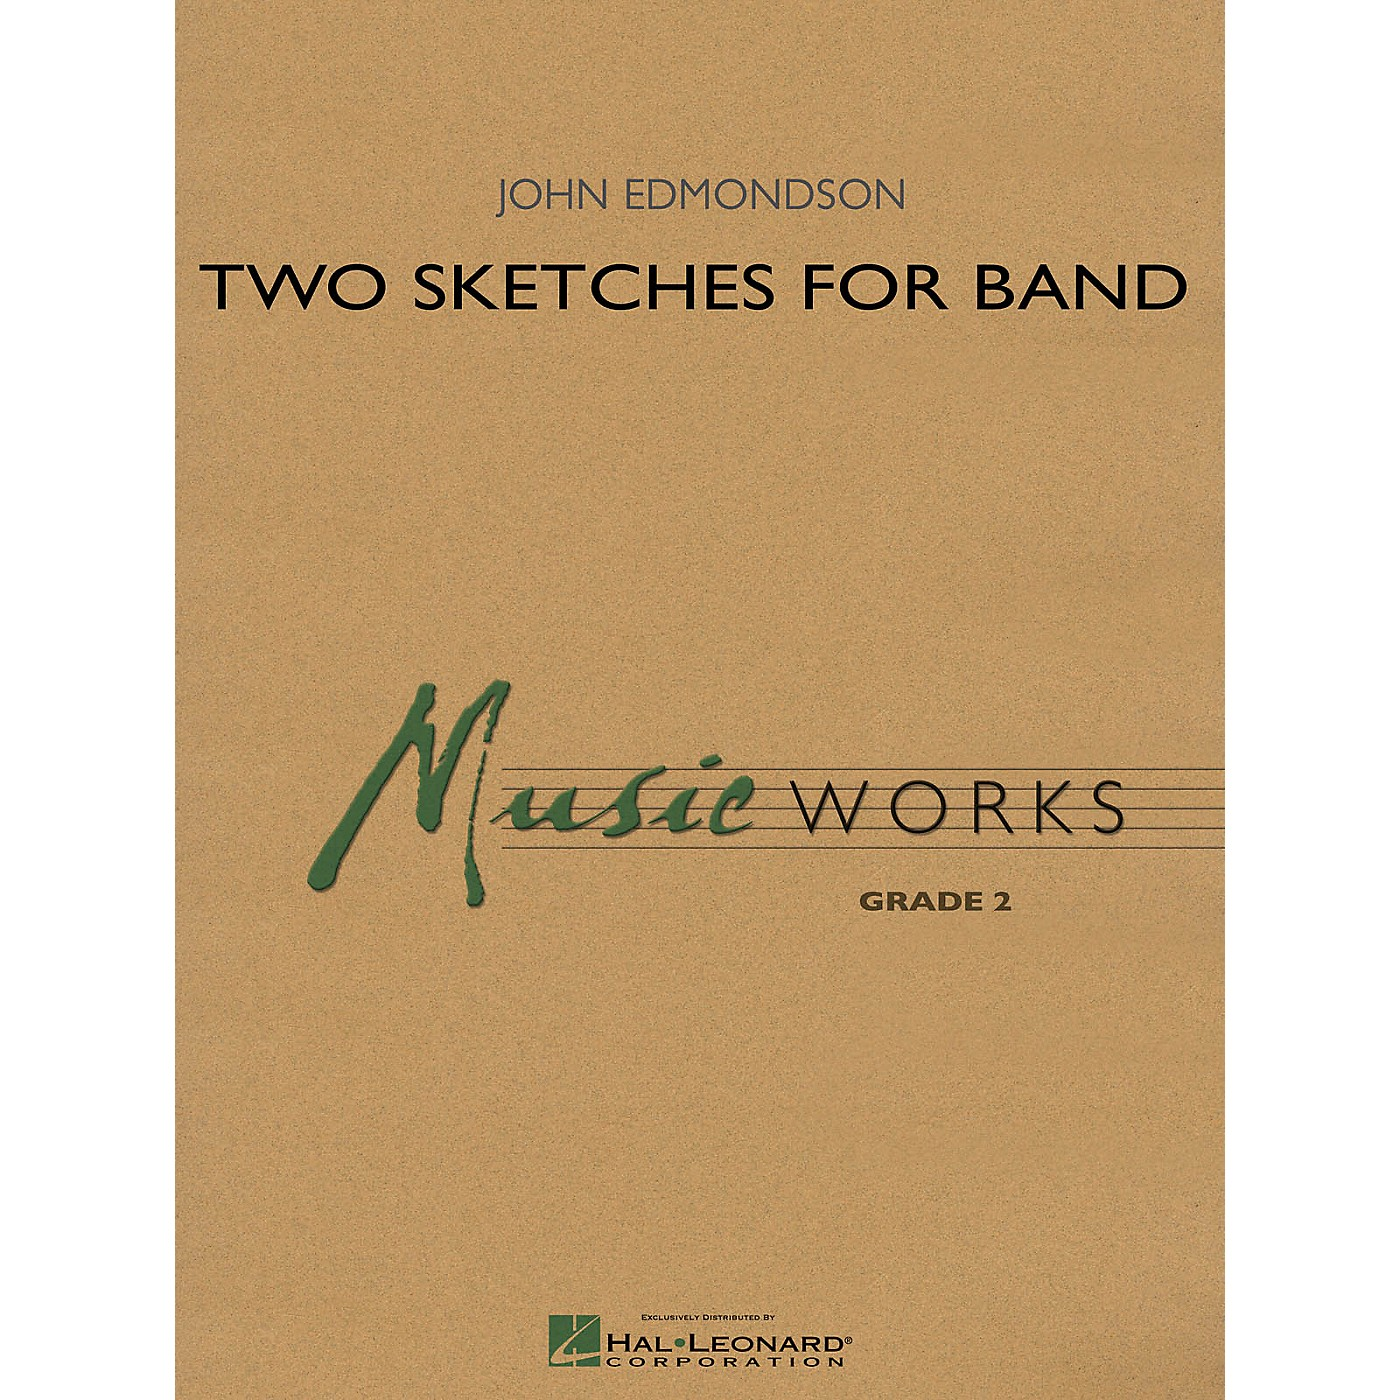 Hal Leonard Two Sketches for Band Concert Band Level 2 Composed by John Edmondson thumbnail